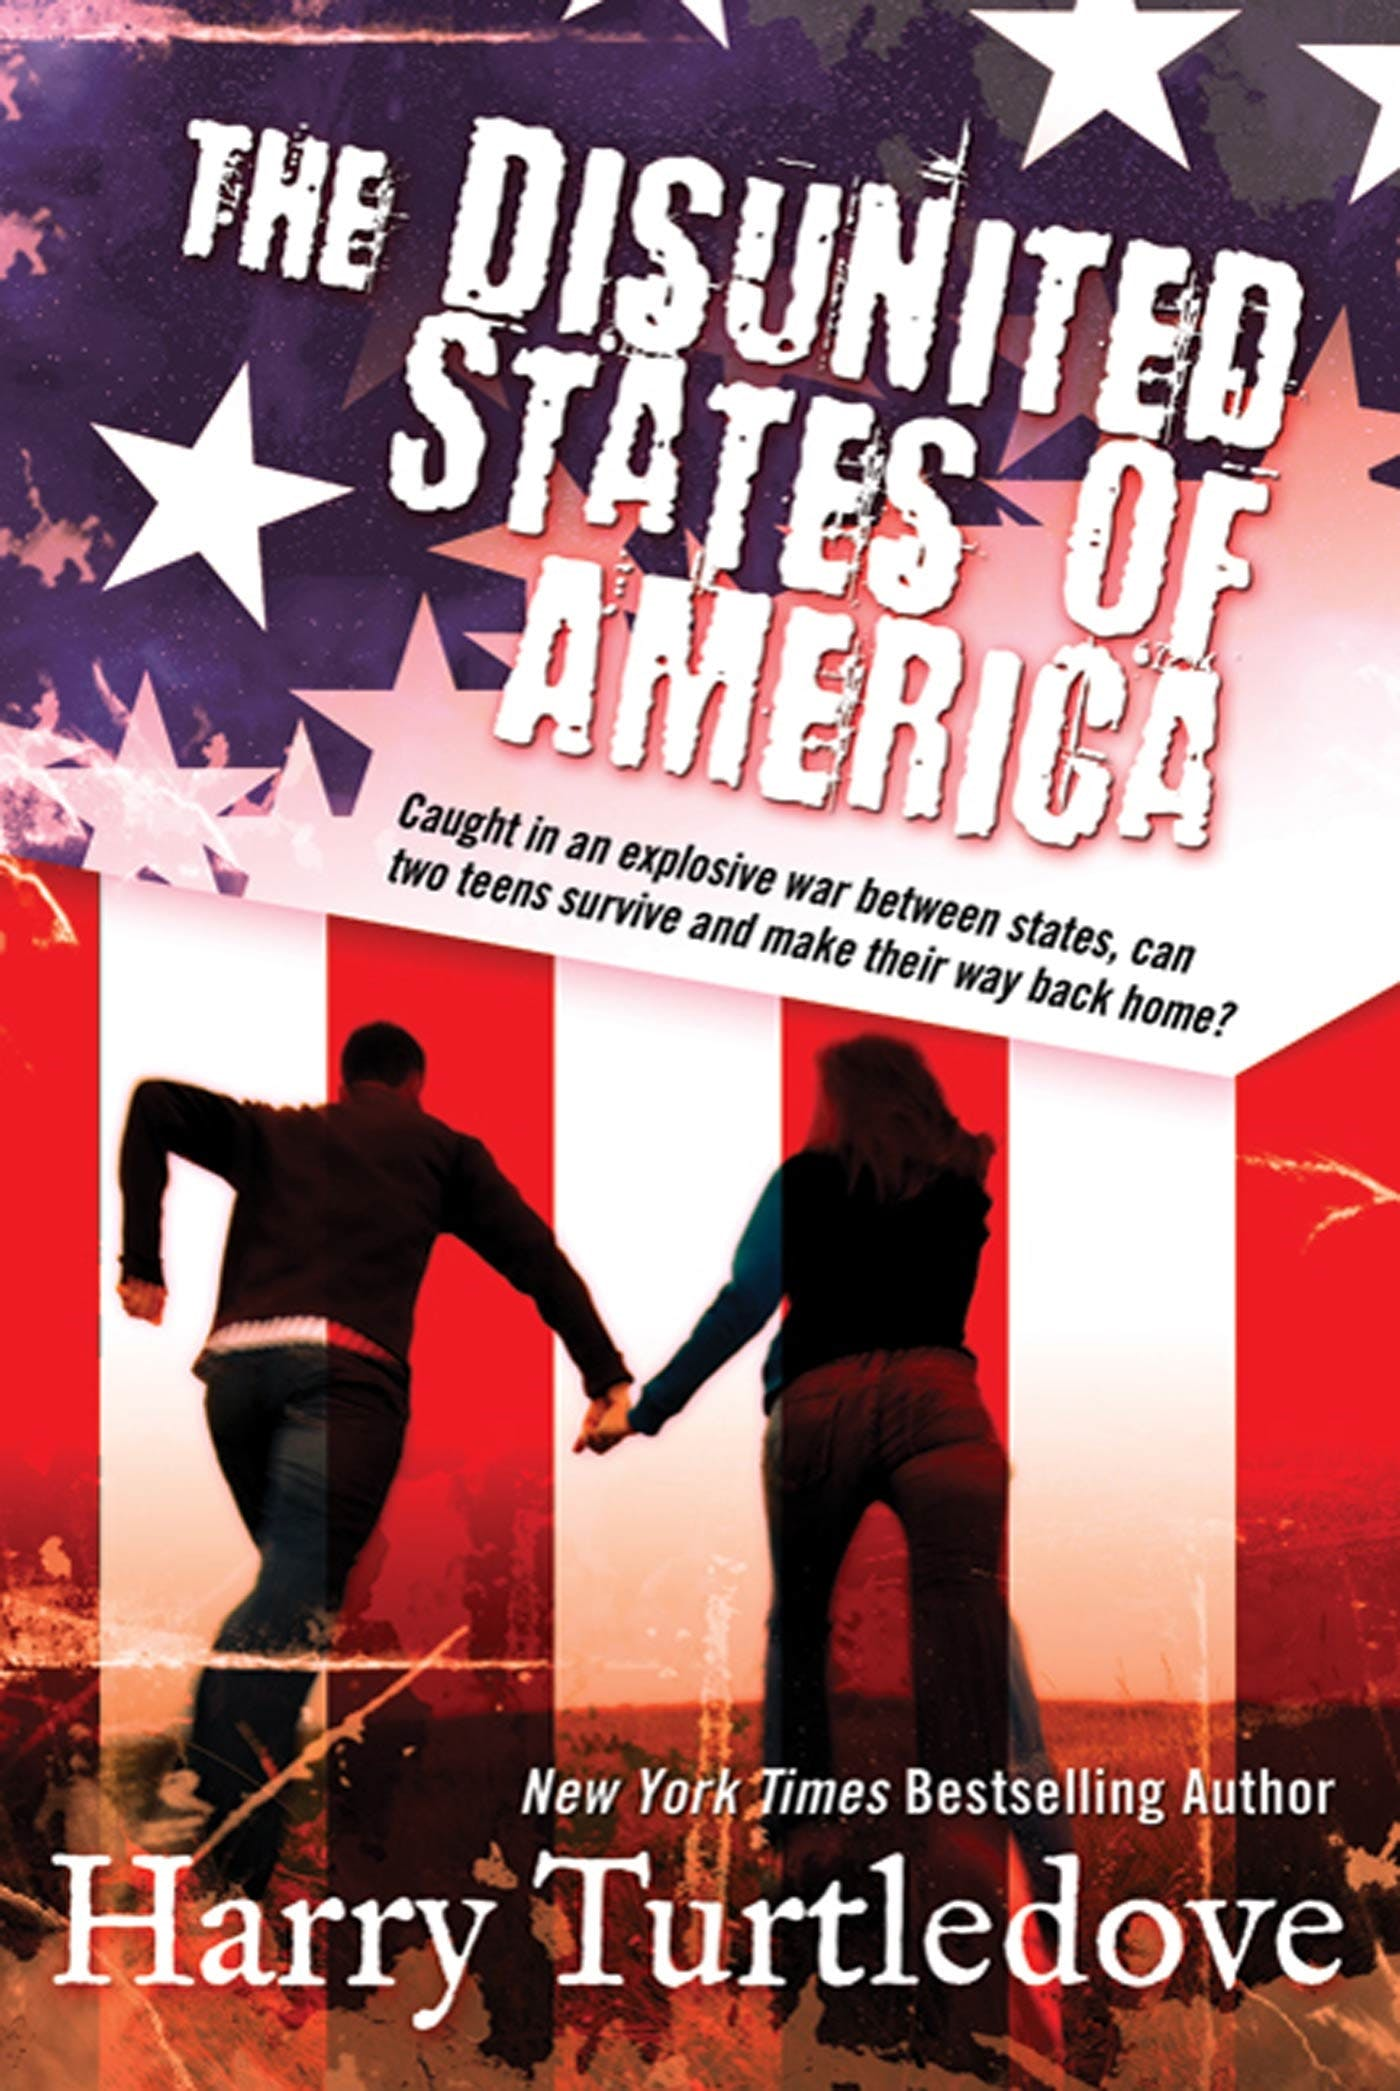 Image of The Disunited States of America